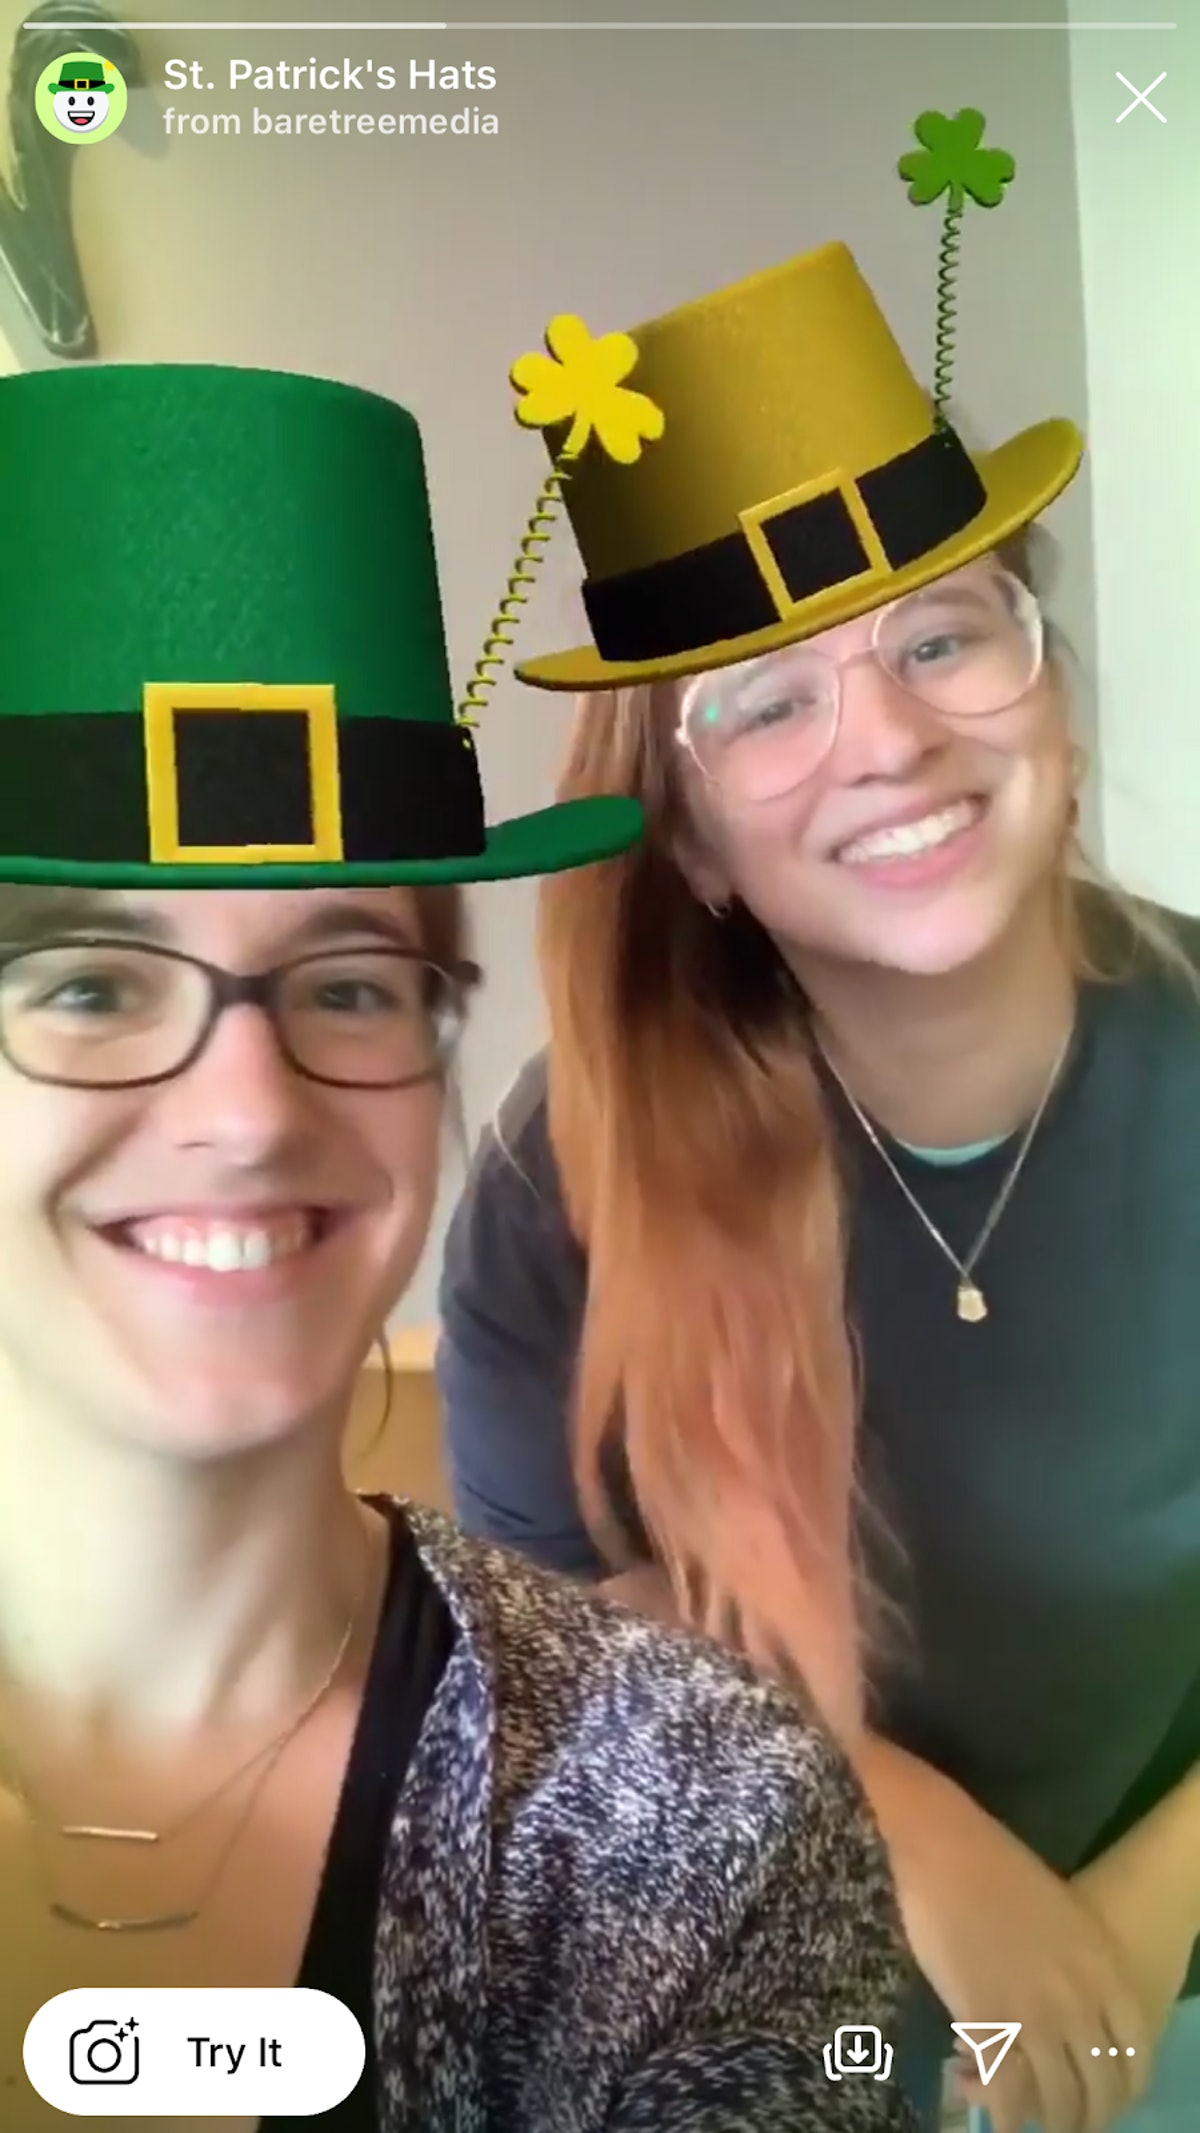 These St. Patrick's Day 2020 Instagram filters will get you in the spirit.